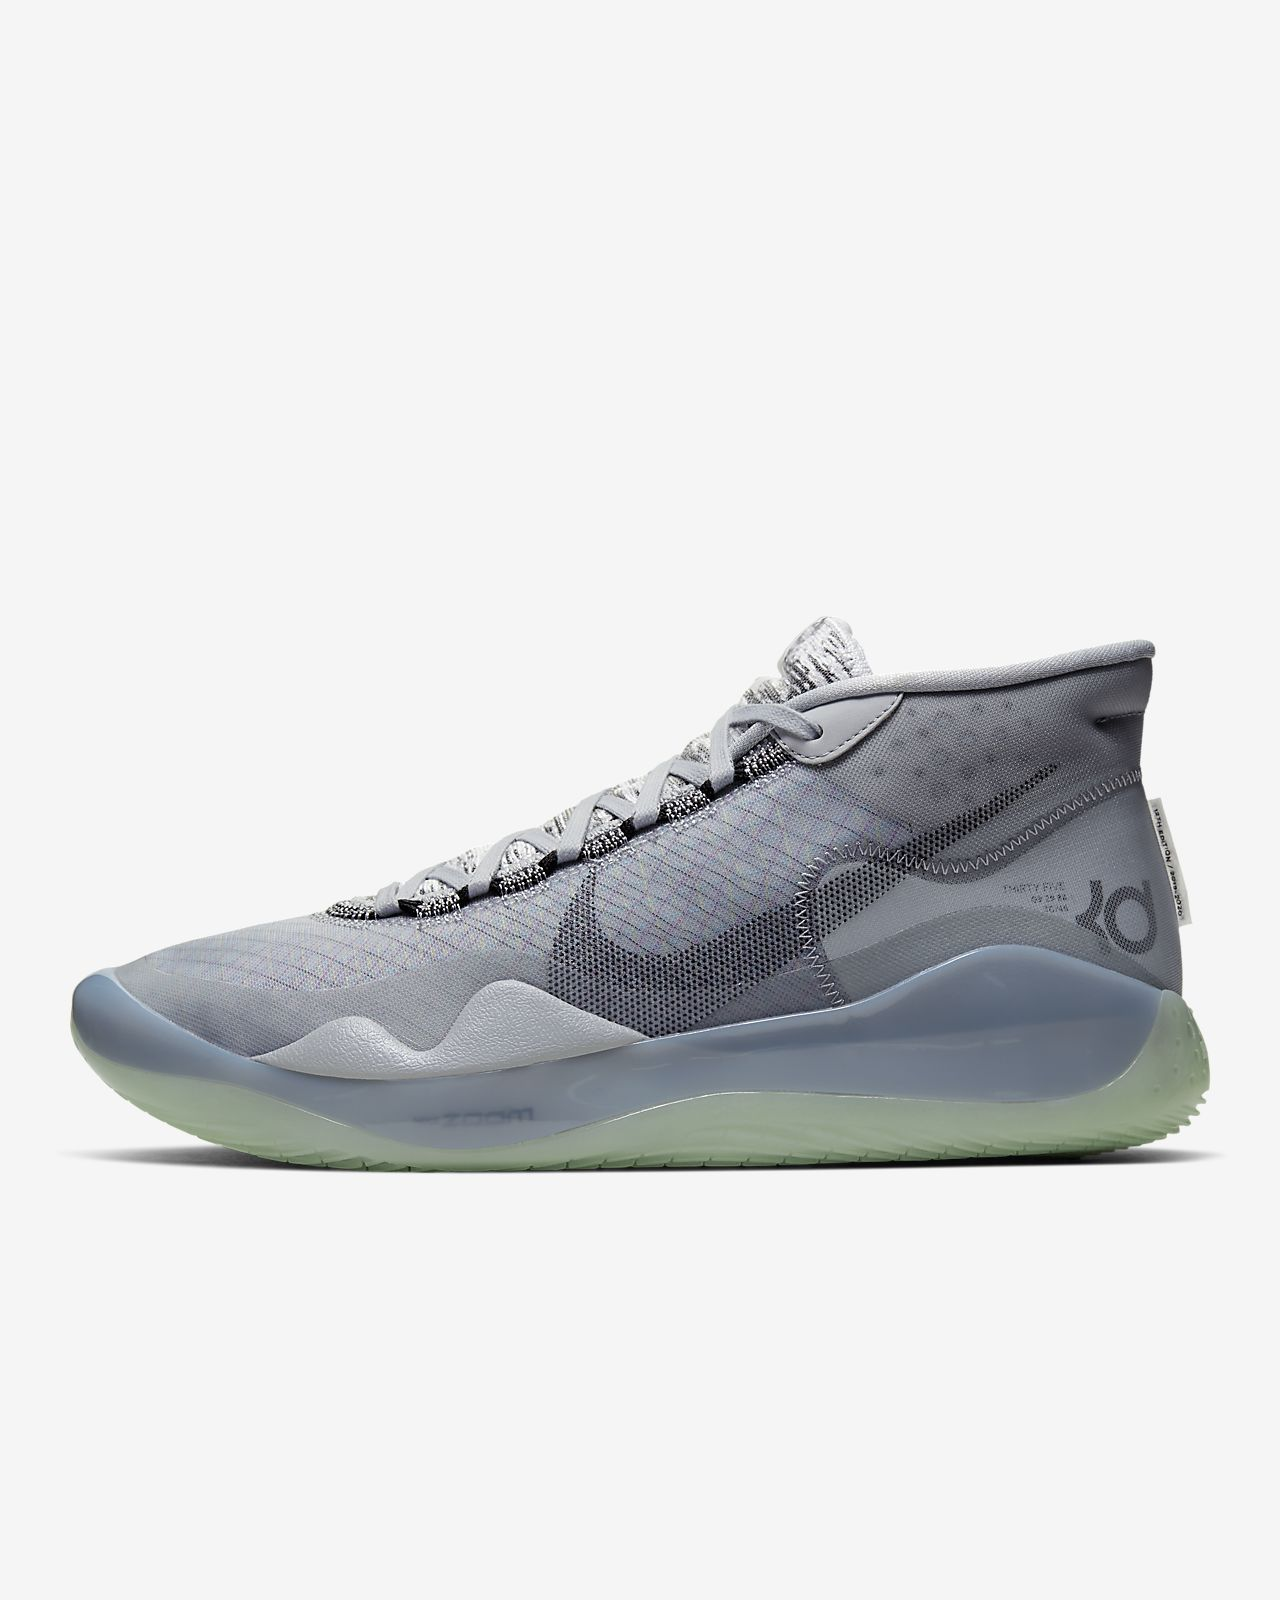 Nike Zoom KD12 (Team) Basketball Shoe